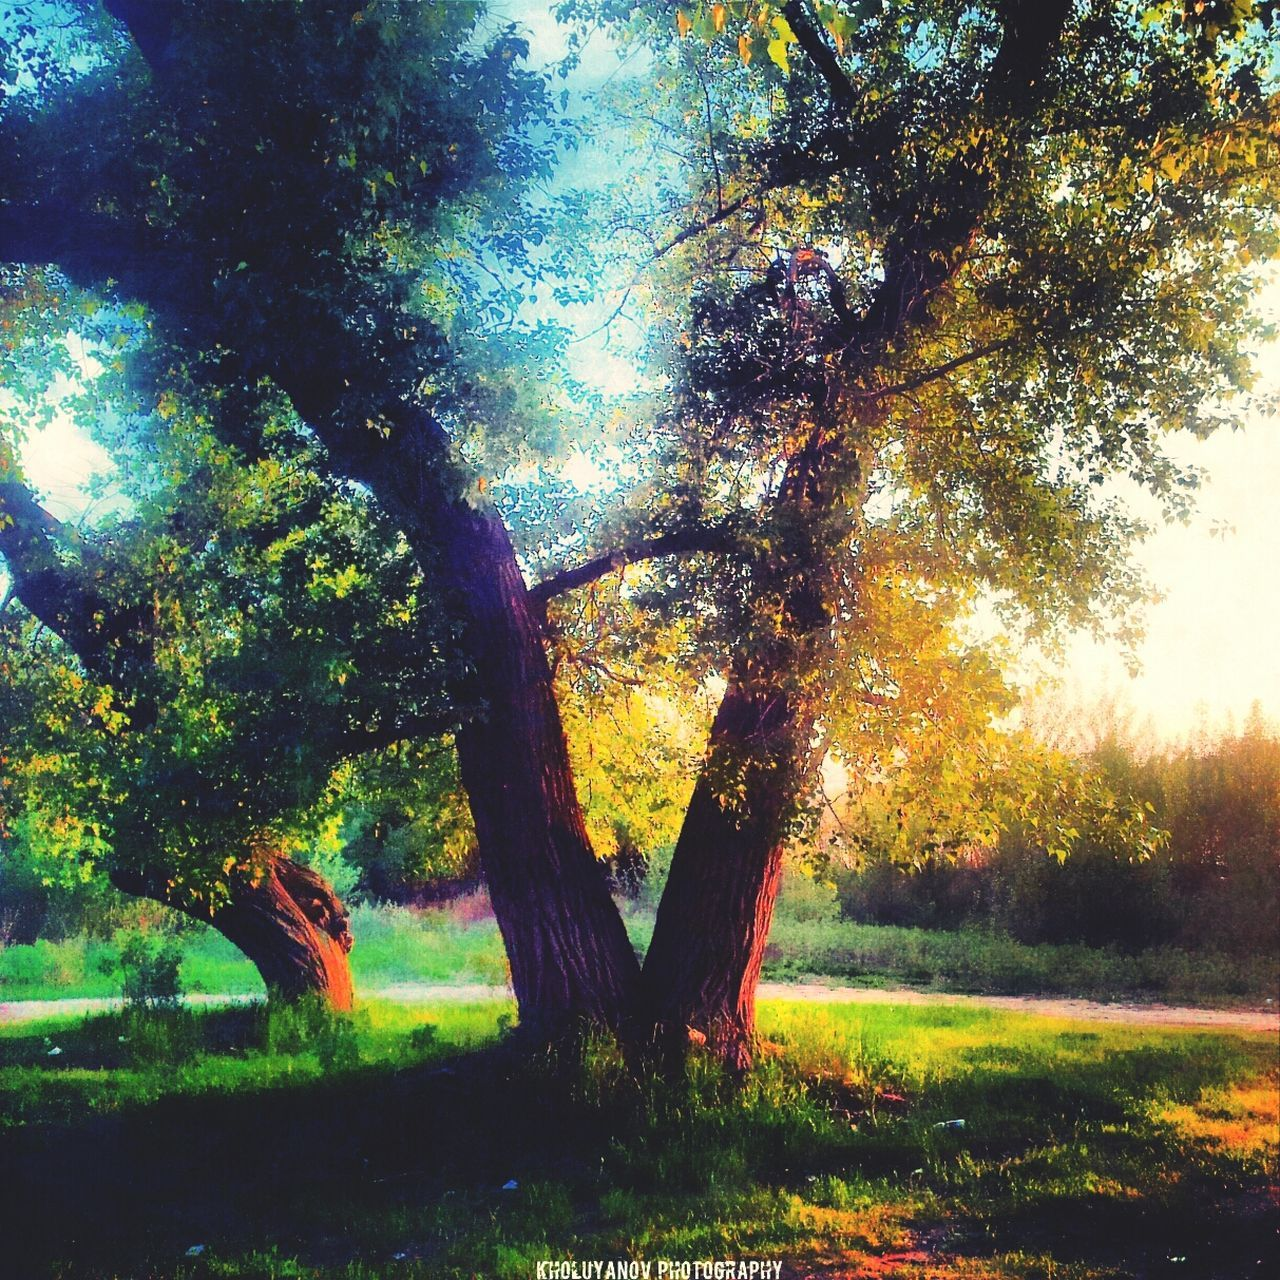 tree, growth, nature, tree trunk, tranquility, beauty in nature, tranquil scene, sunlight, outdoors, landscape, scenics, no people, grass, branch, day, sky